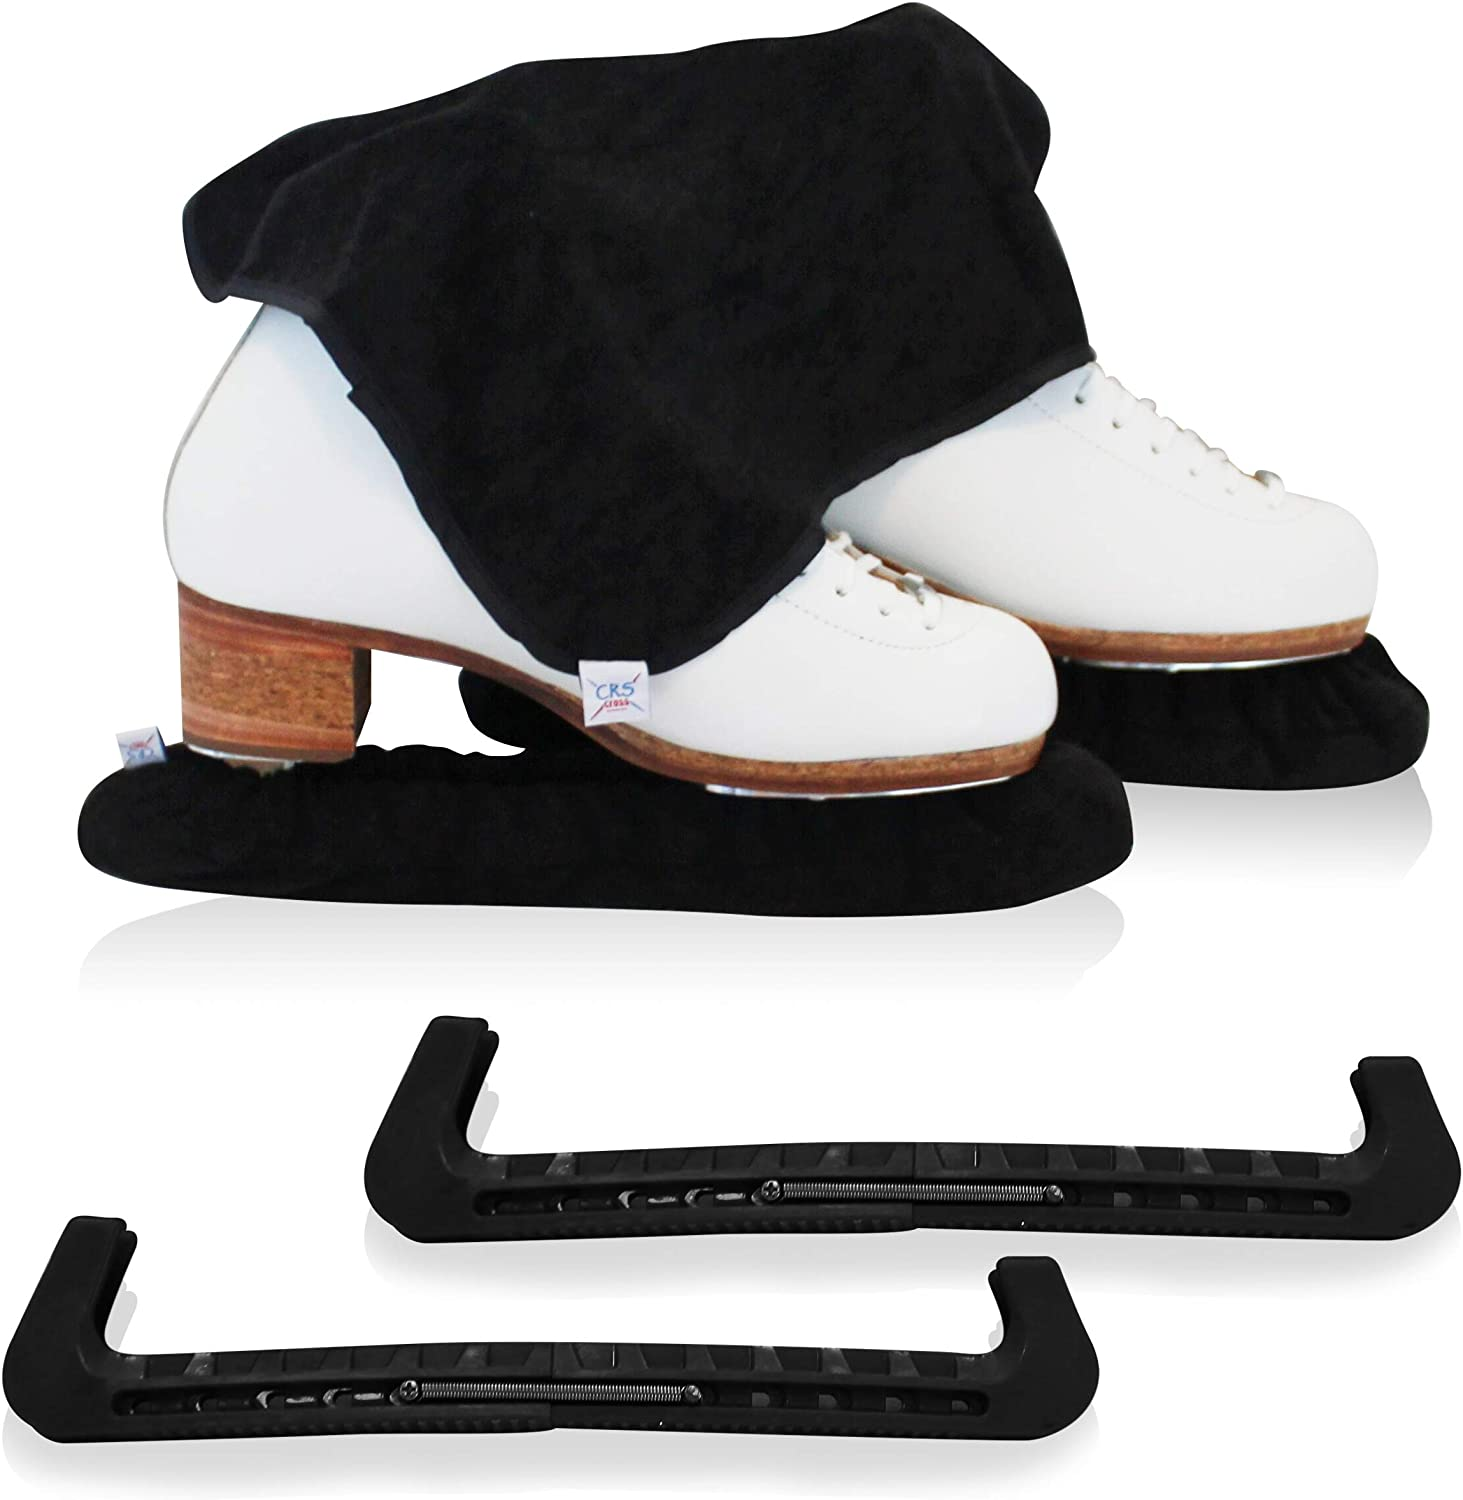 Details about  /Universal Skates Blade Guard Ice Protection Off Ice Protector Guard Cover